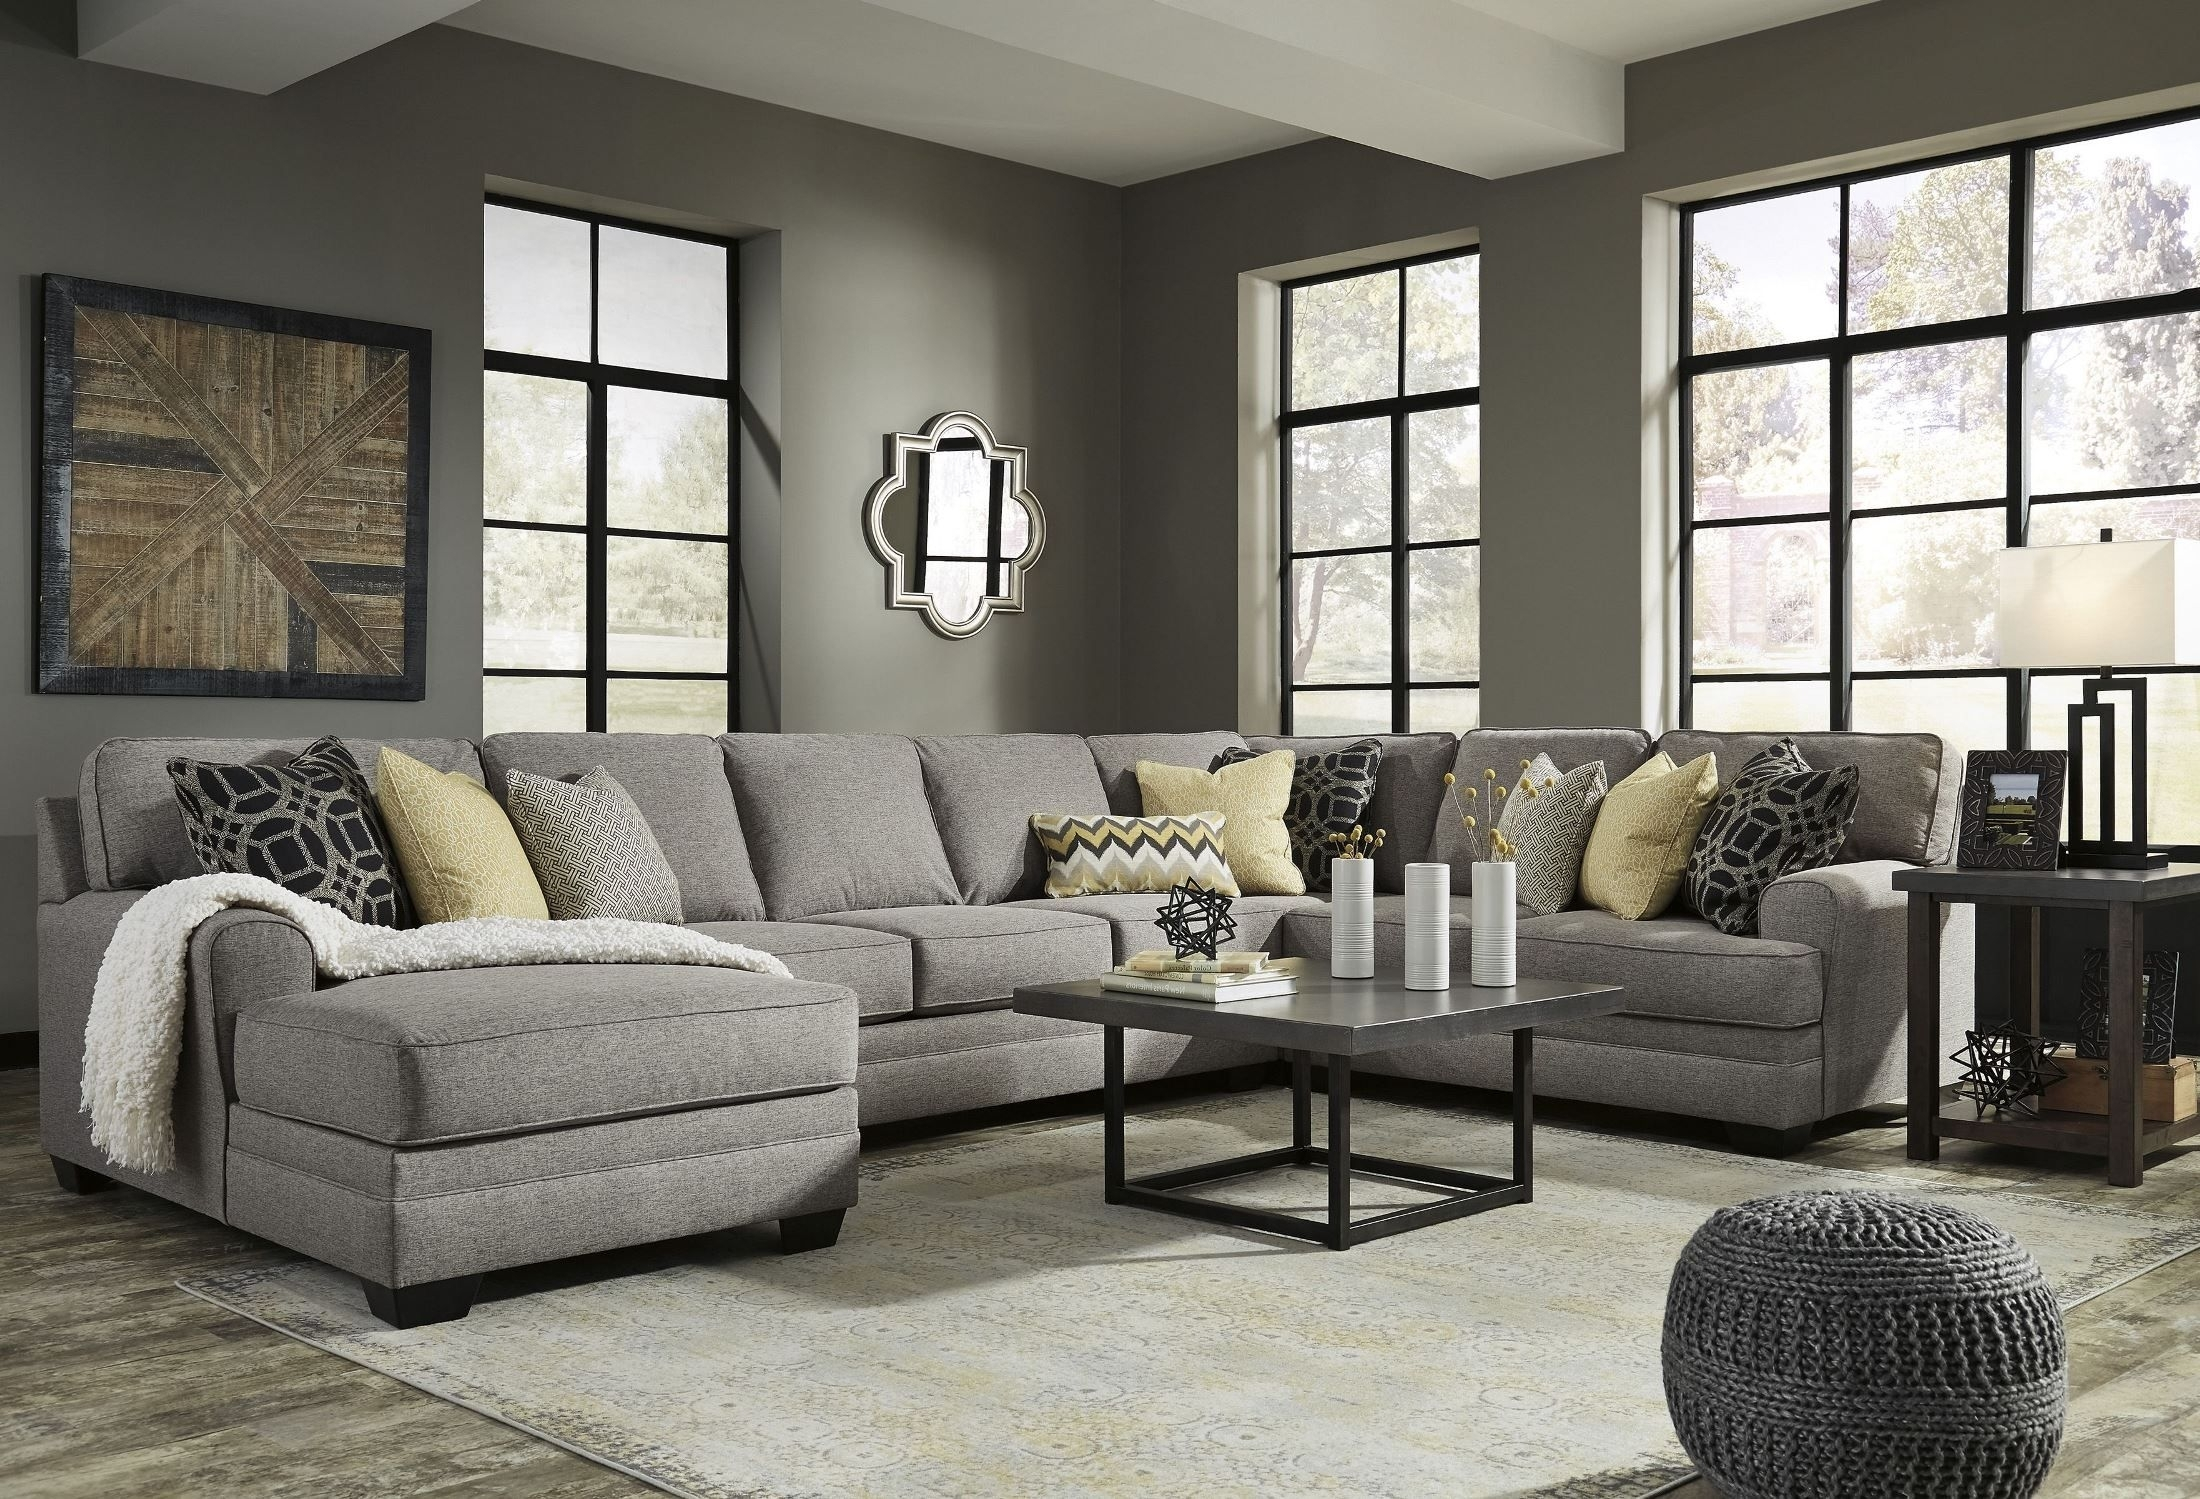 Large Chaise Sofas | Baci Living Room Throughout Delano 2 Piece Sectionals With Laf Oversized Chaise (Image 16 of 25)